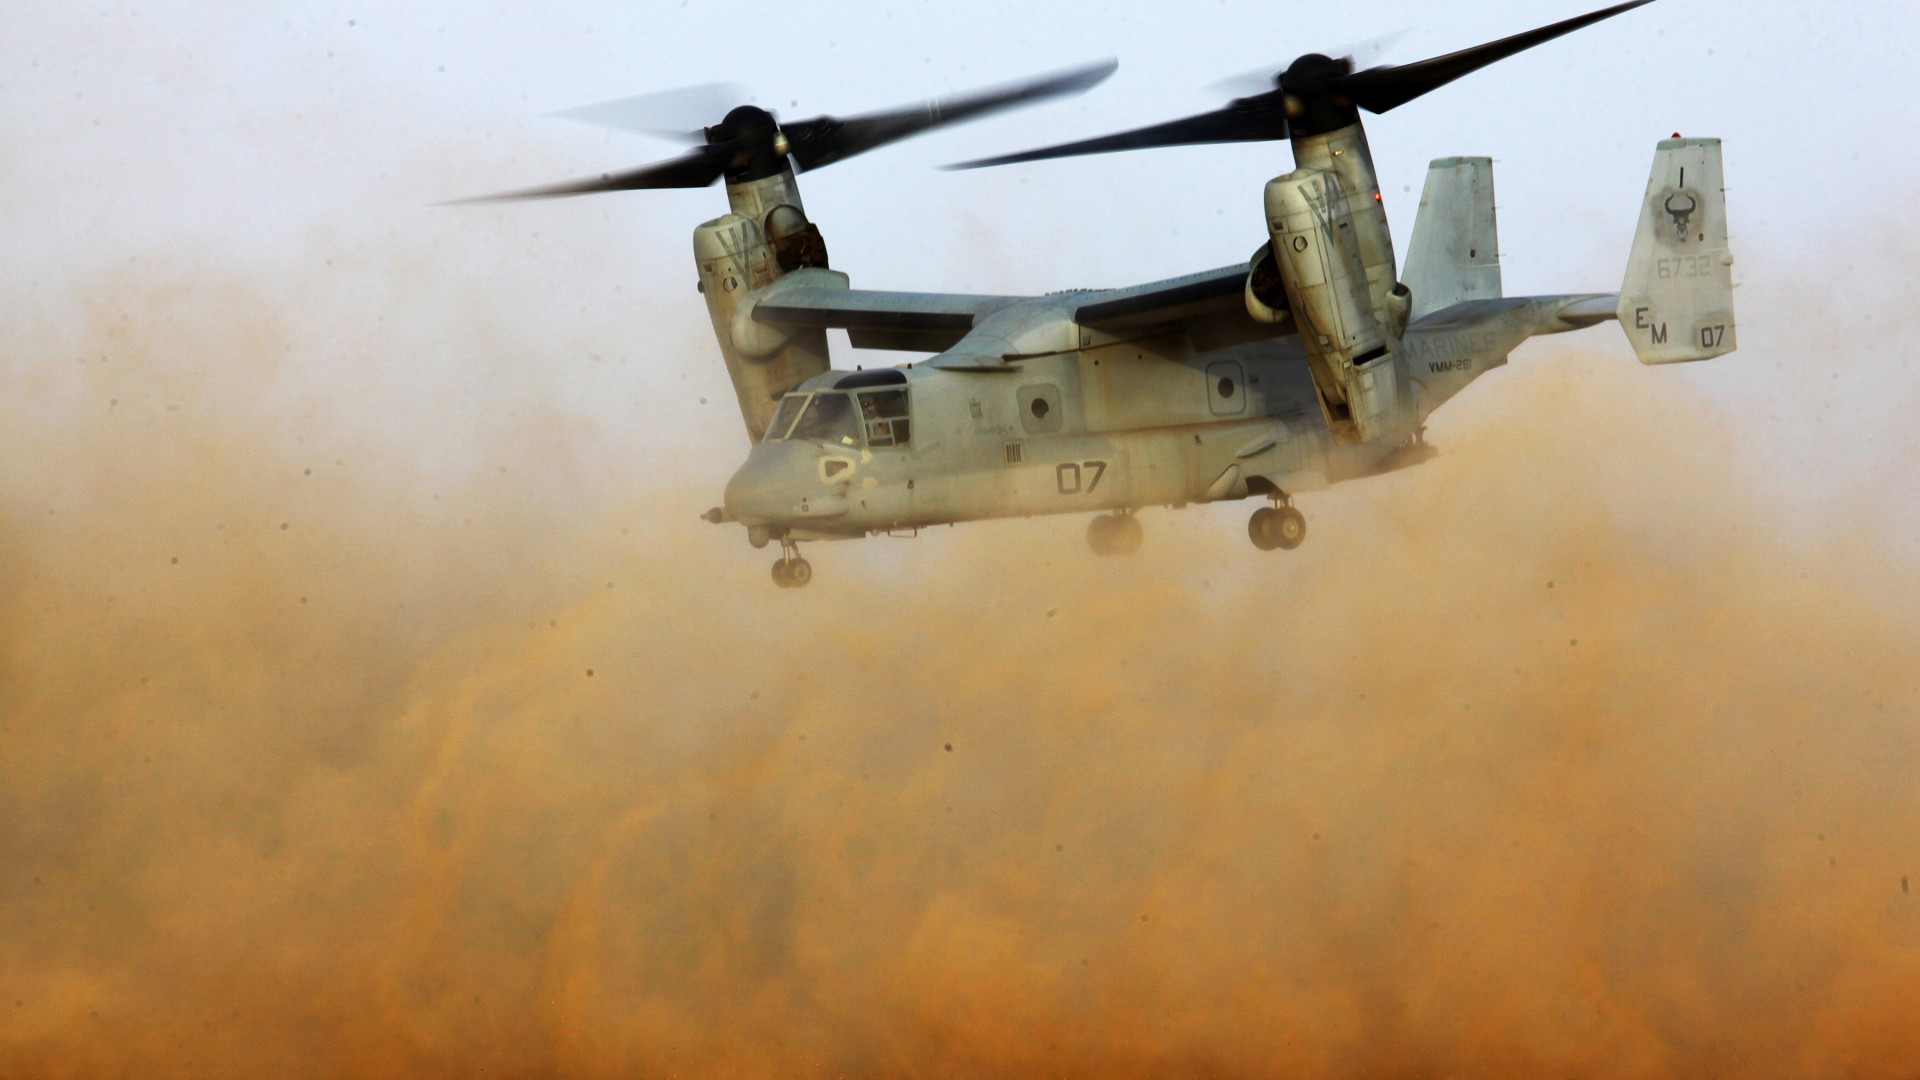 V-22 Osprey, Osprey, Bell, Boeing, tiltrotor, multi-mission aircraft, desert, US Army, U.S. Air Force (horizontal)